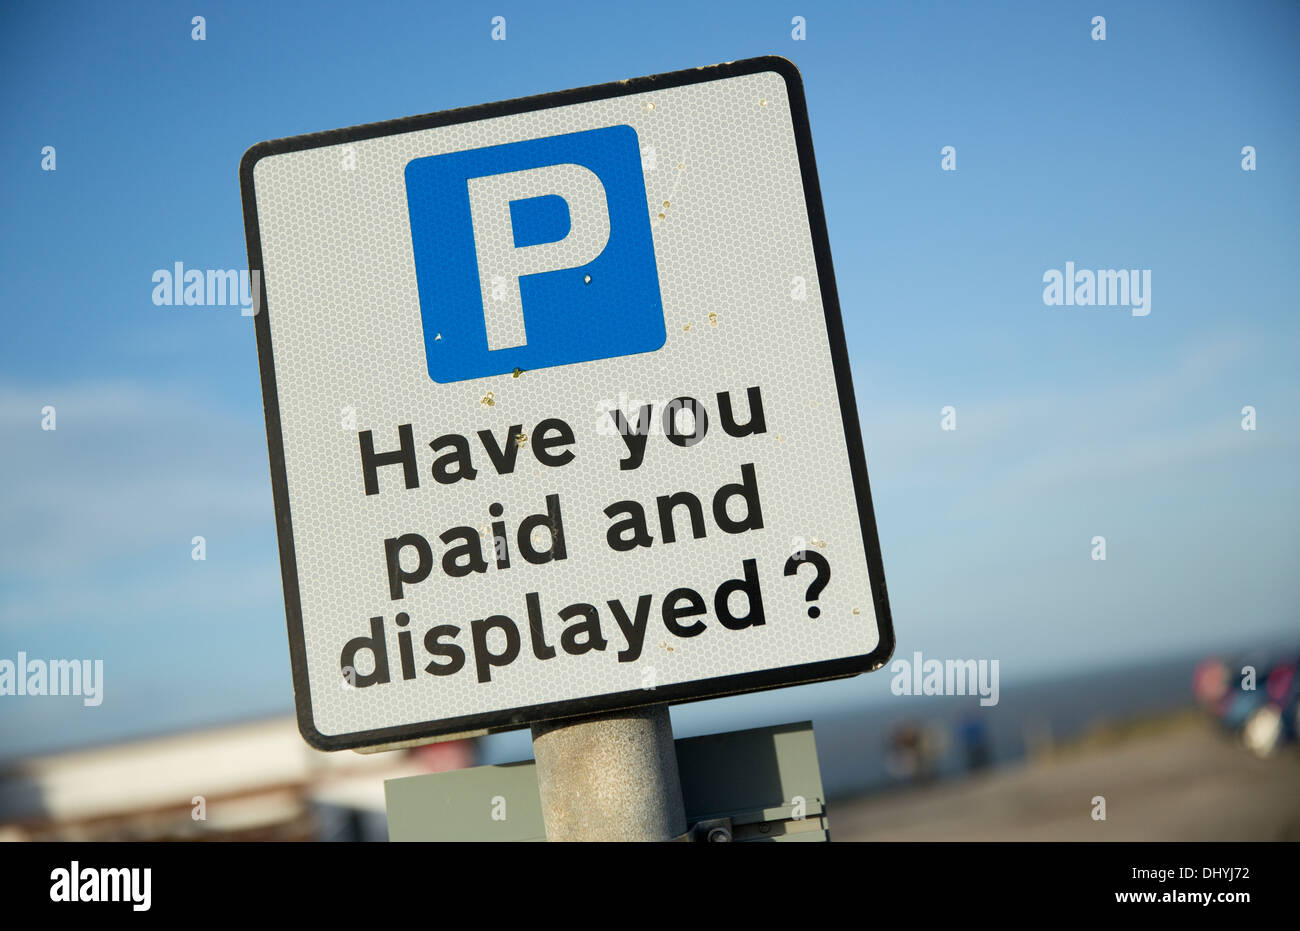 Have you paid and displayed Car Park Pay and Display Sign - Stock Image